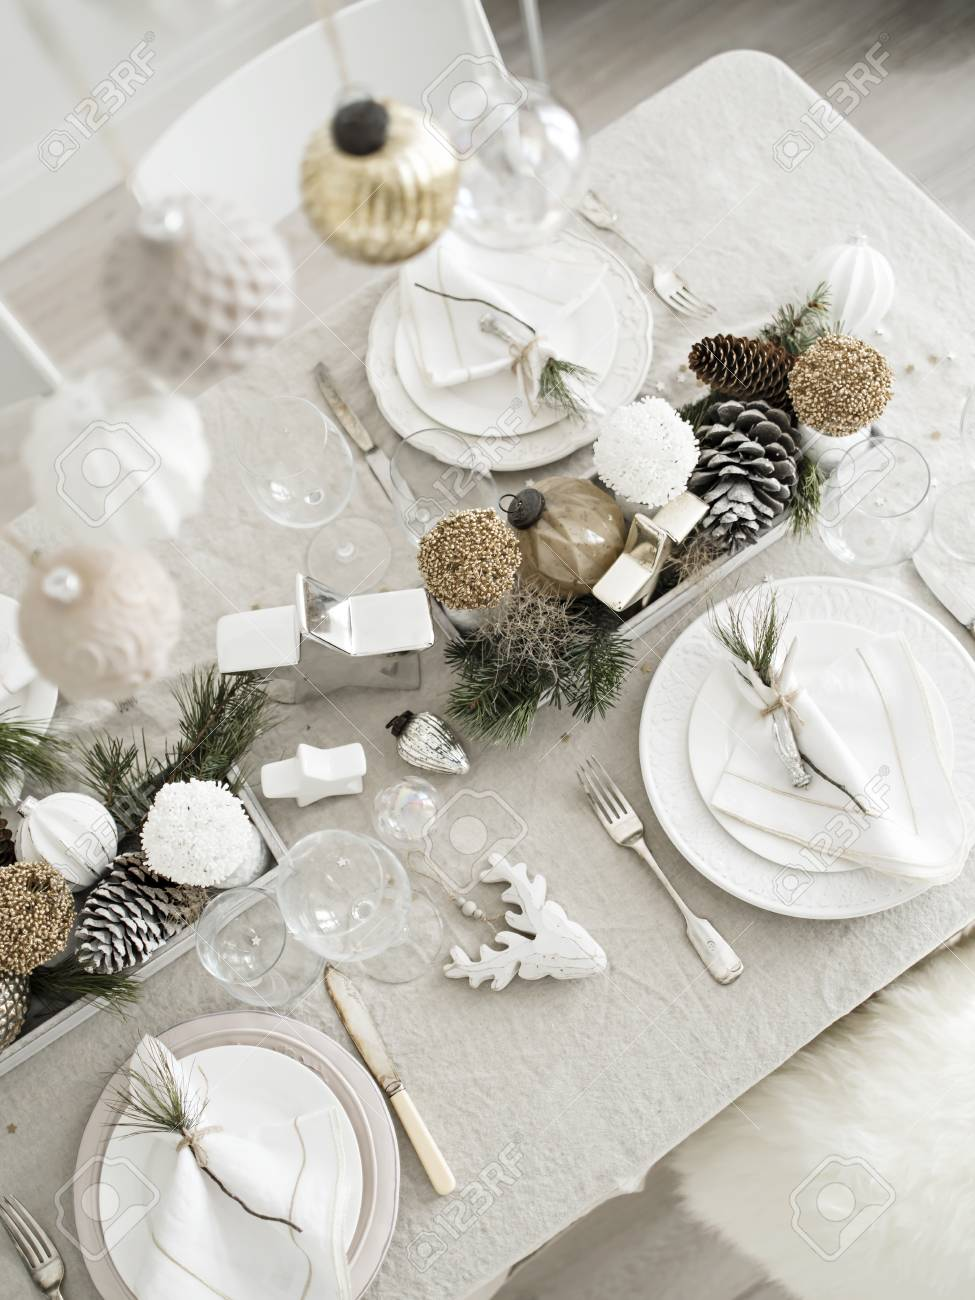 Xmas Dinner In Living Room Plate With Linen Napkin Napkin Holders Stock Photo Picture And Royalty Free Image Image 101792173